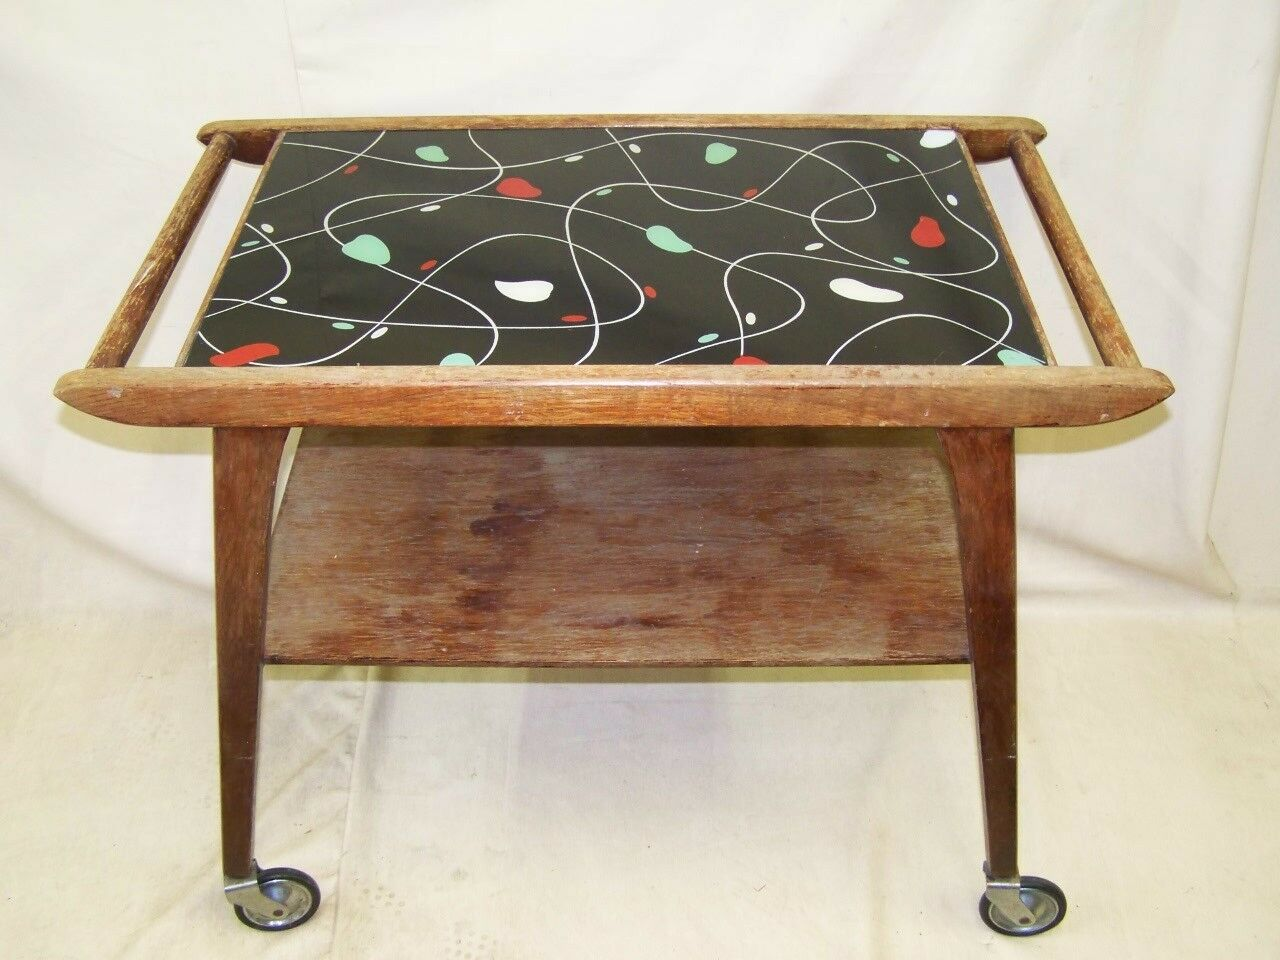 Rare antique Serving trolley,Iconic Design 1950s Years Rockabilly Tea trolley